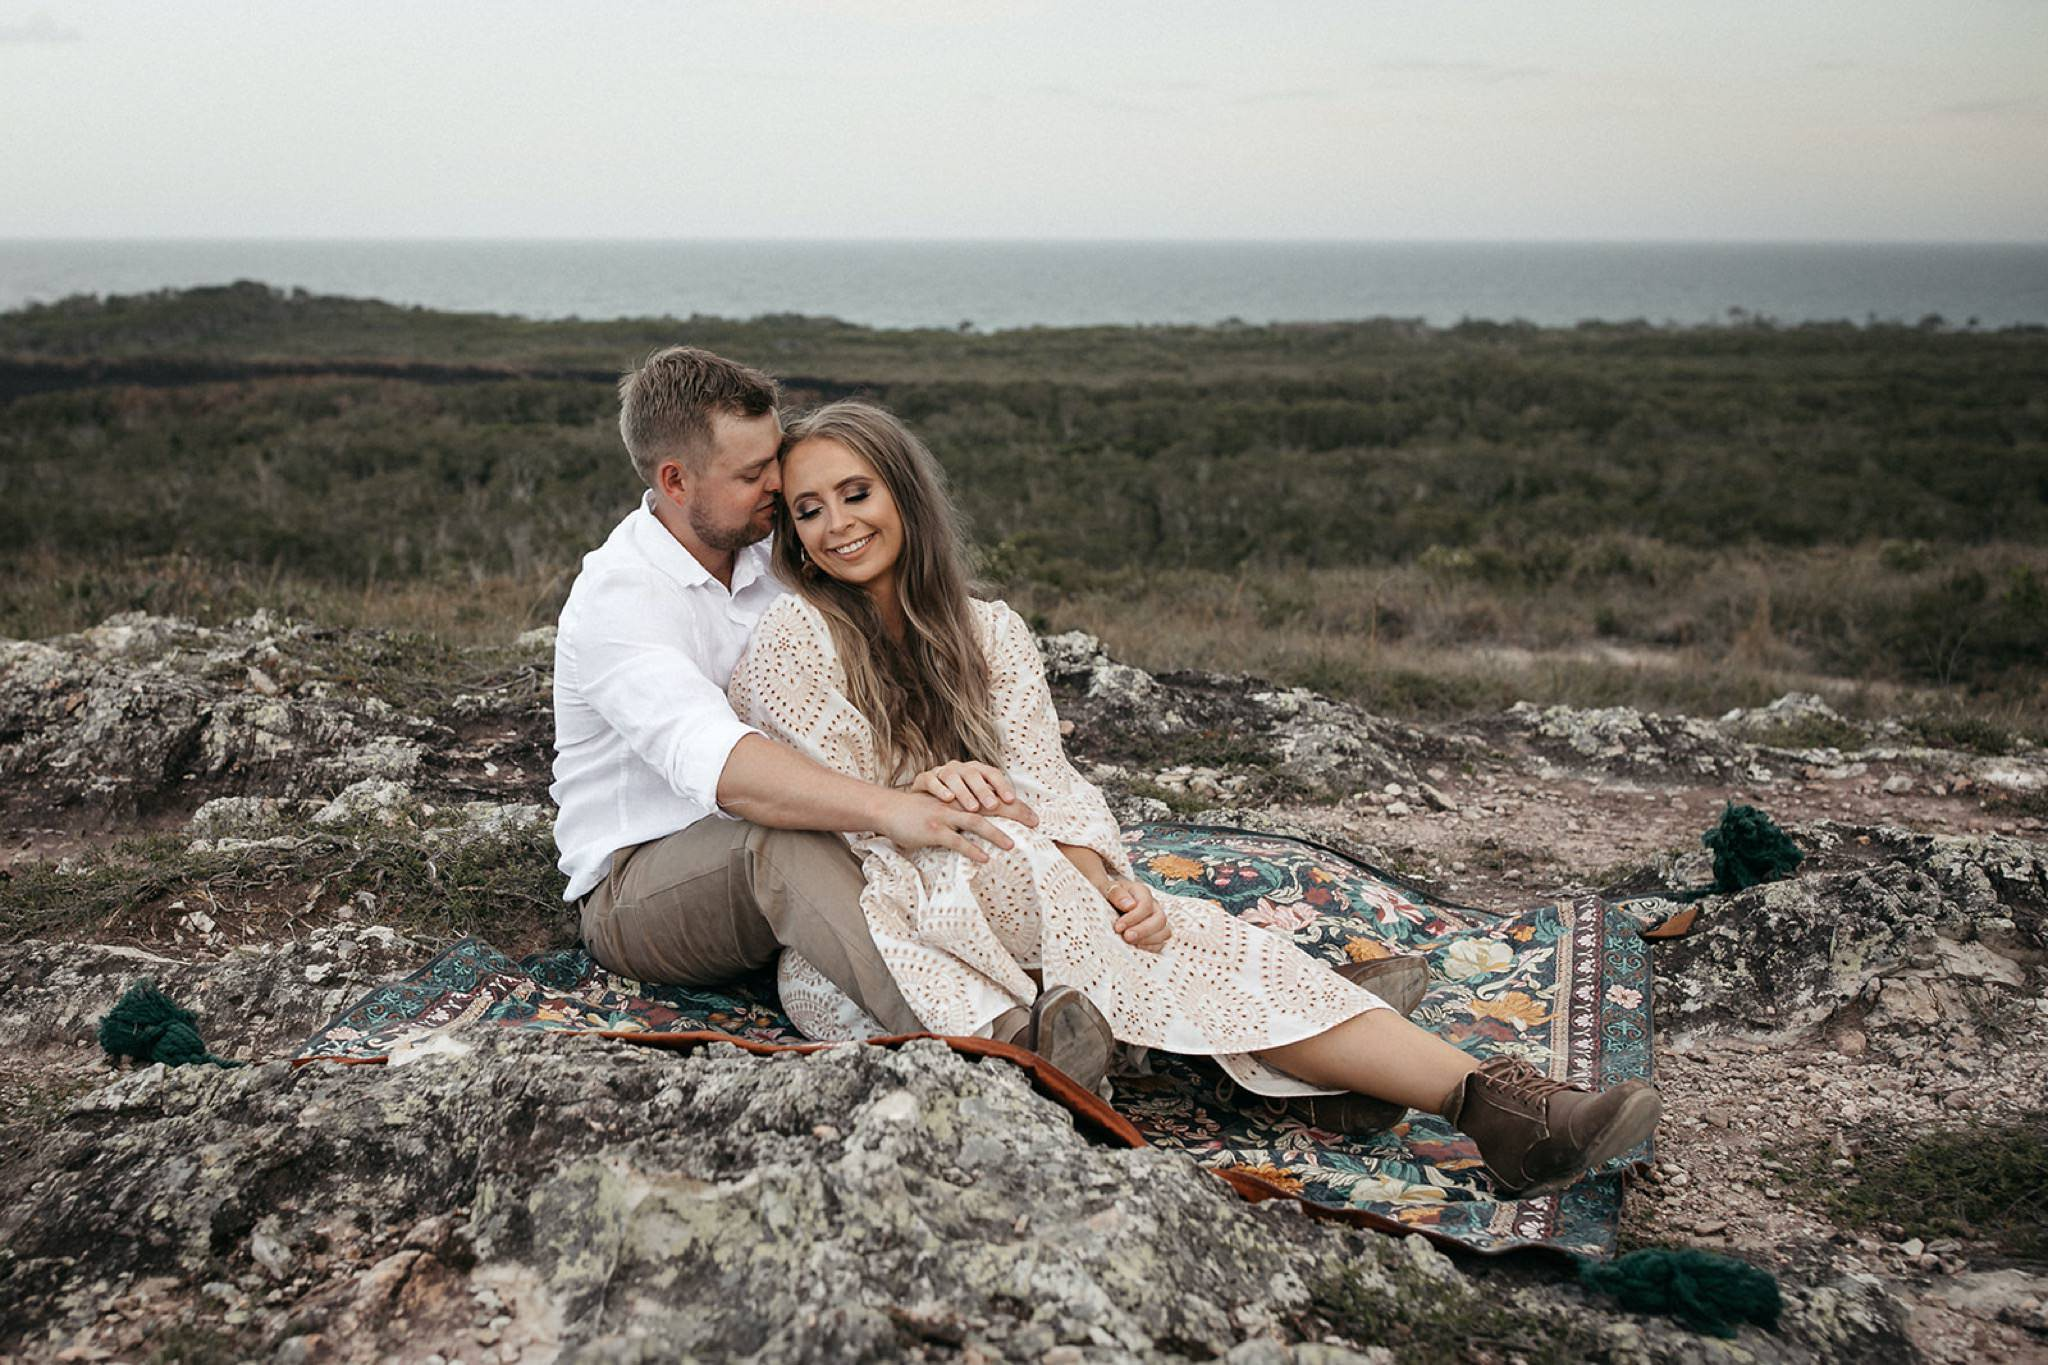 Sunshine Coast Engagement Shoot locations